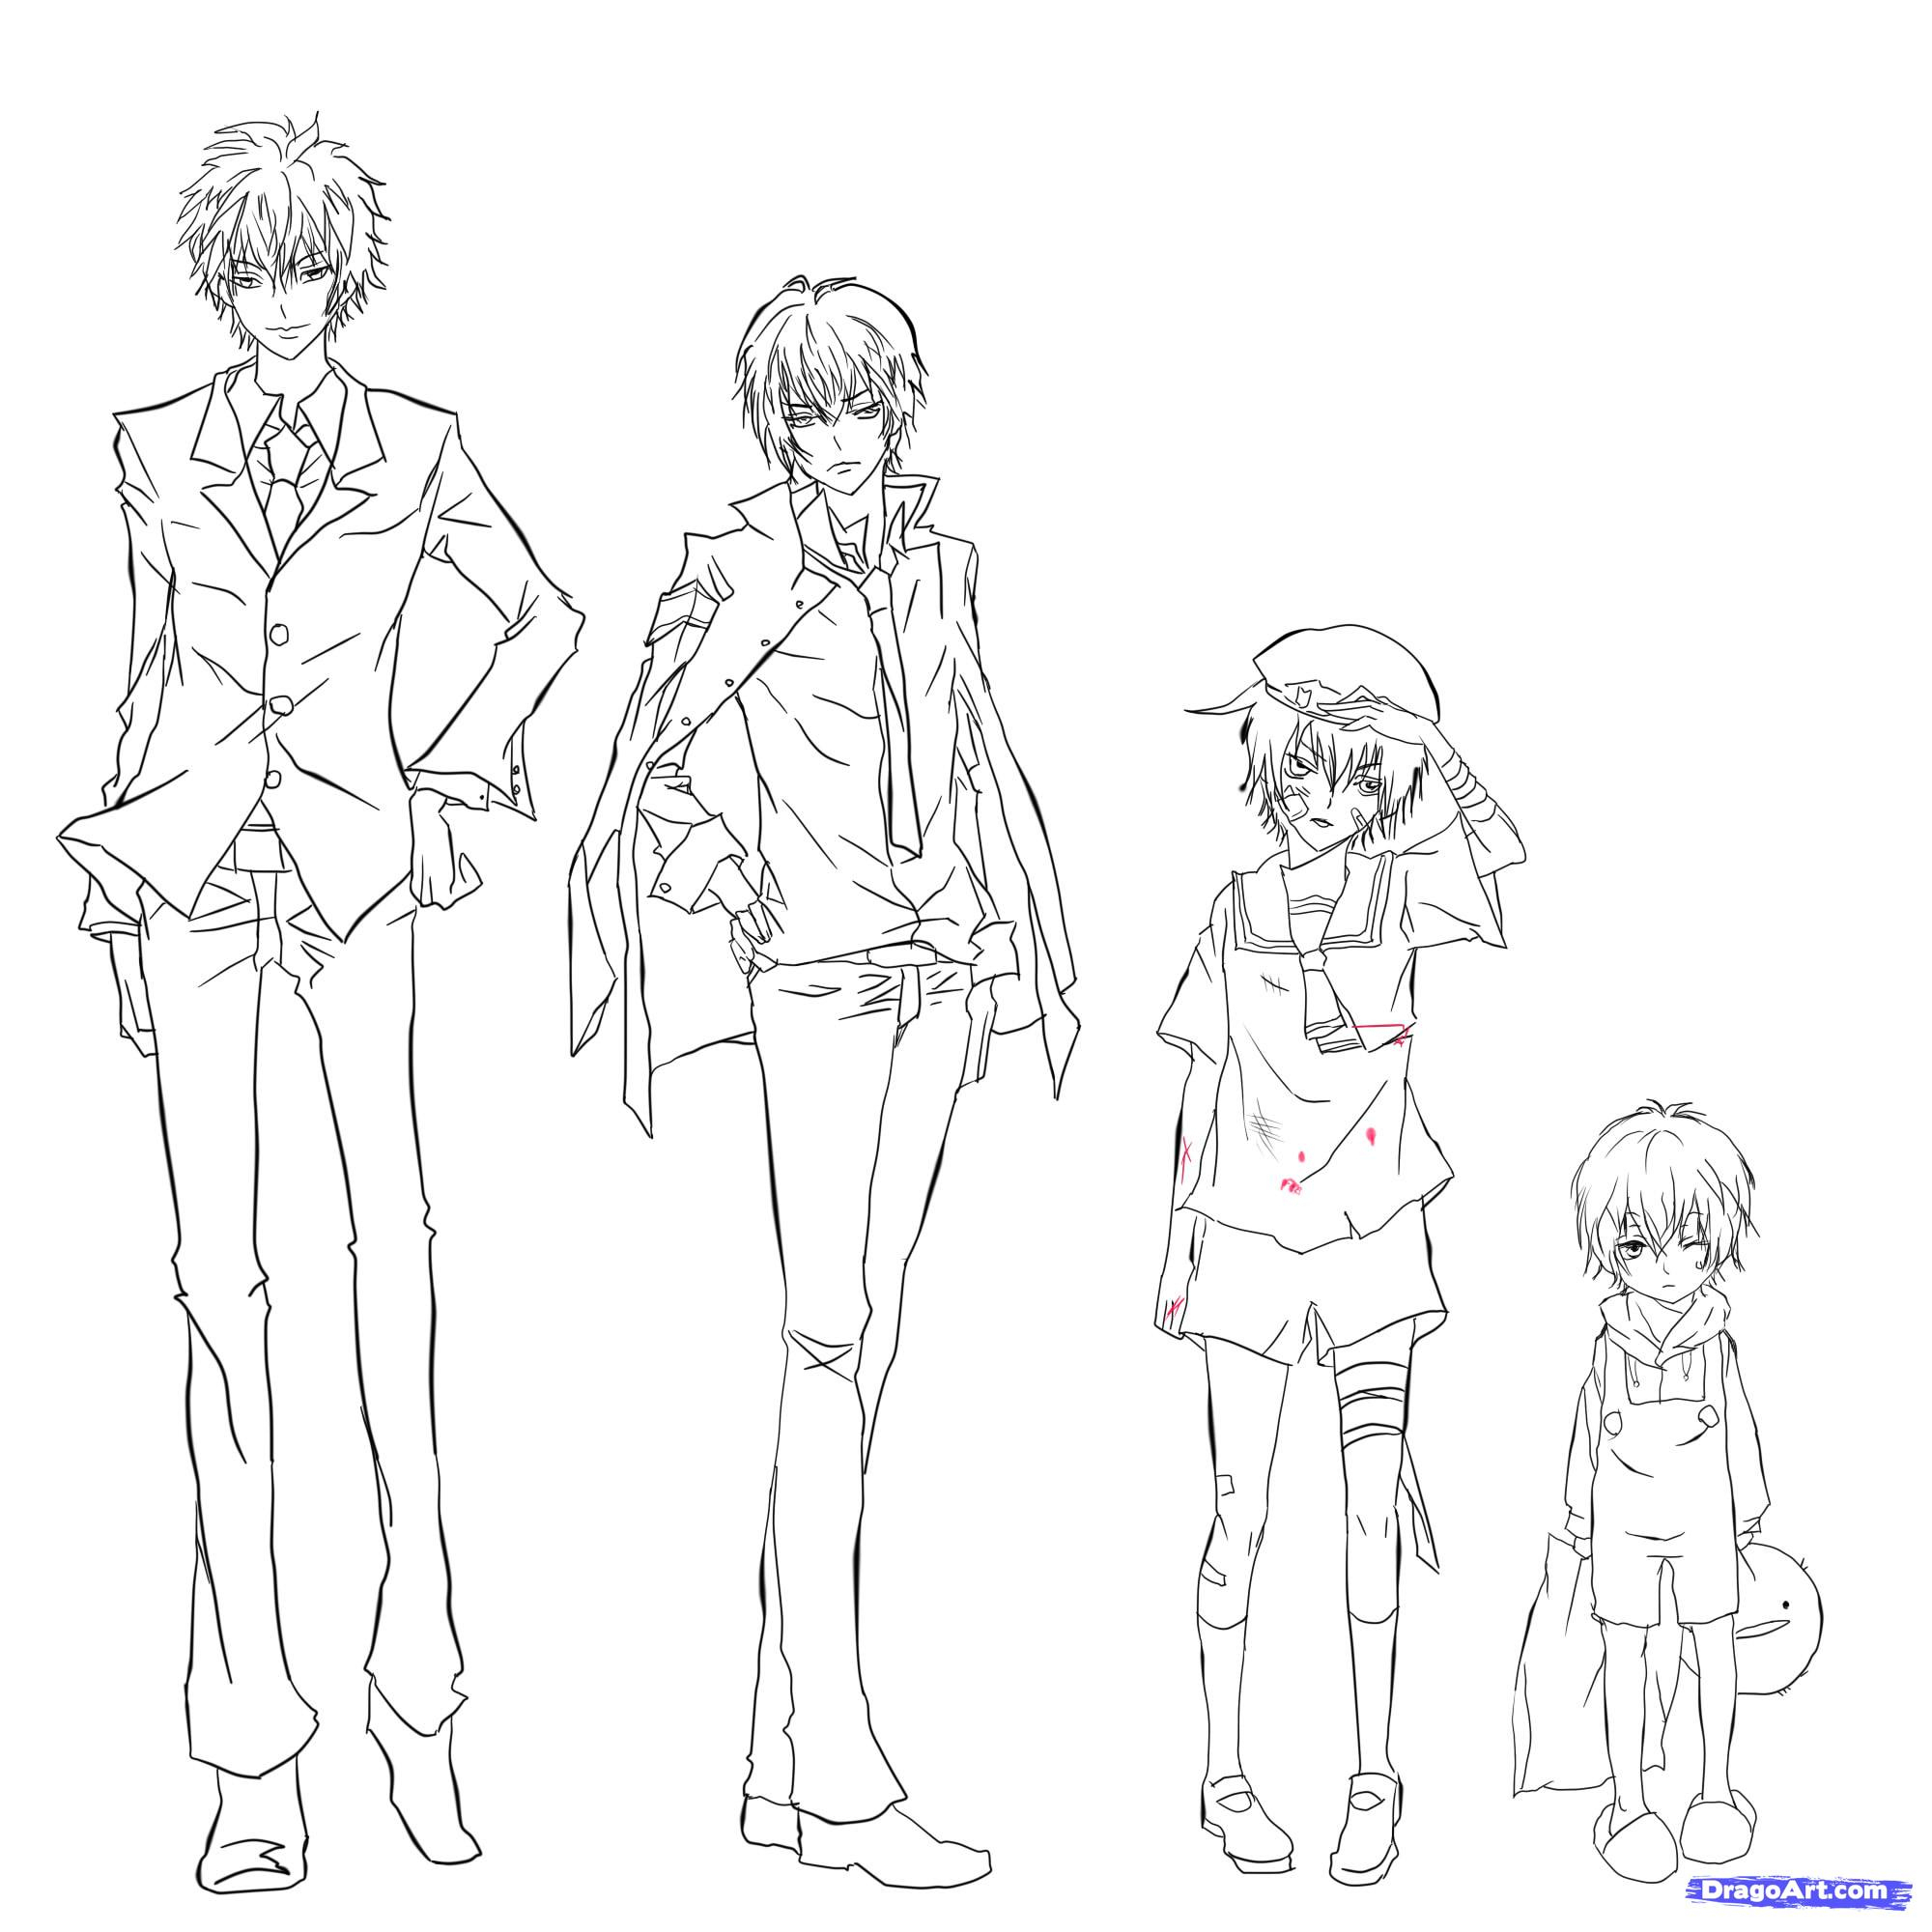 2000x2000 Pencil Drawn Anime Characters Body Outline Pencil Drawn Anime